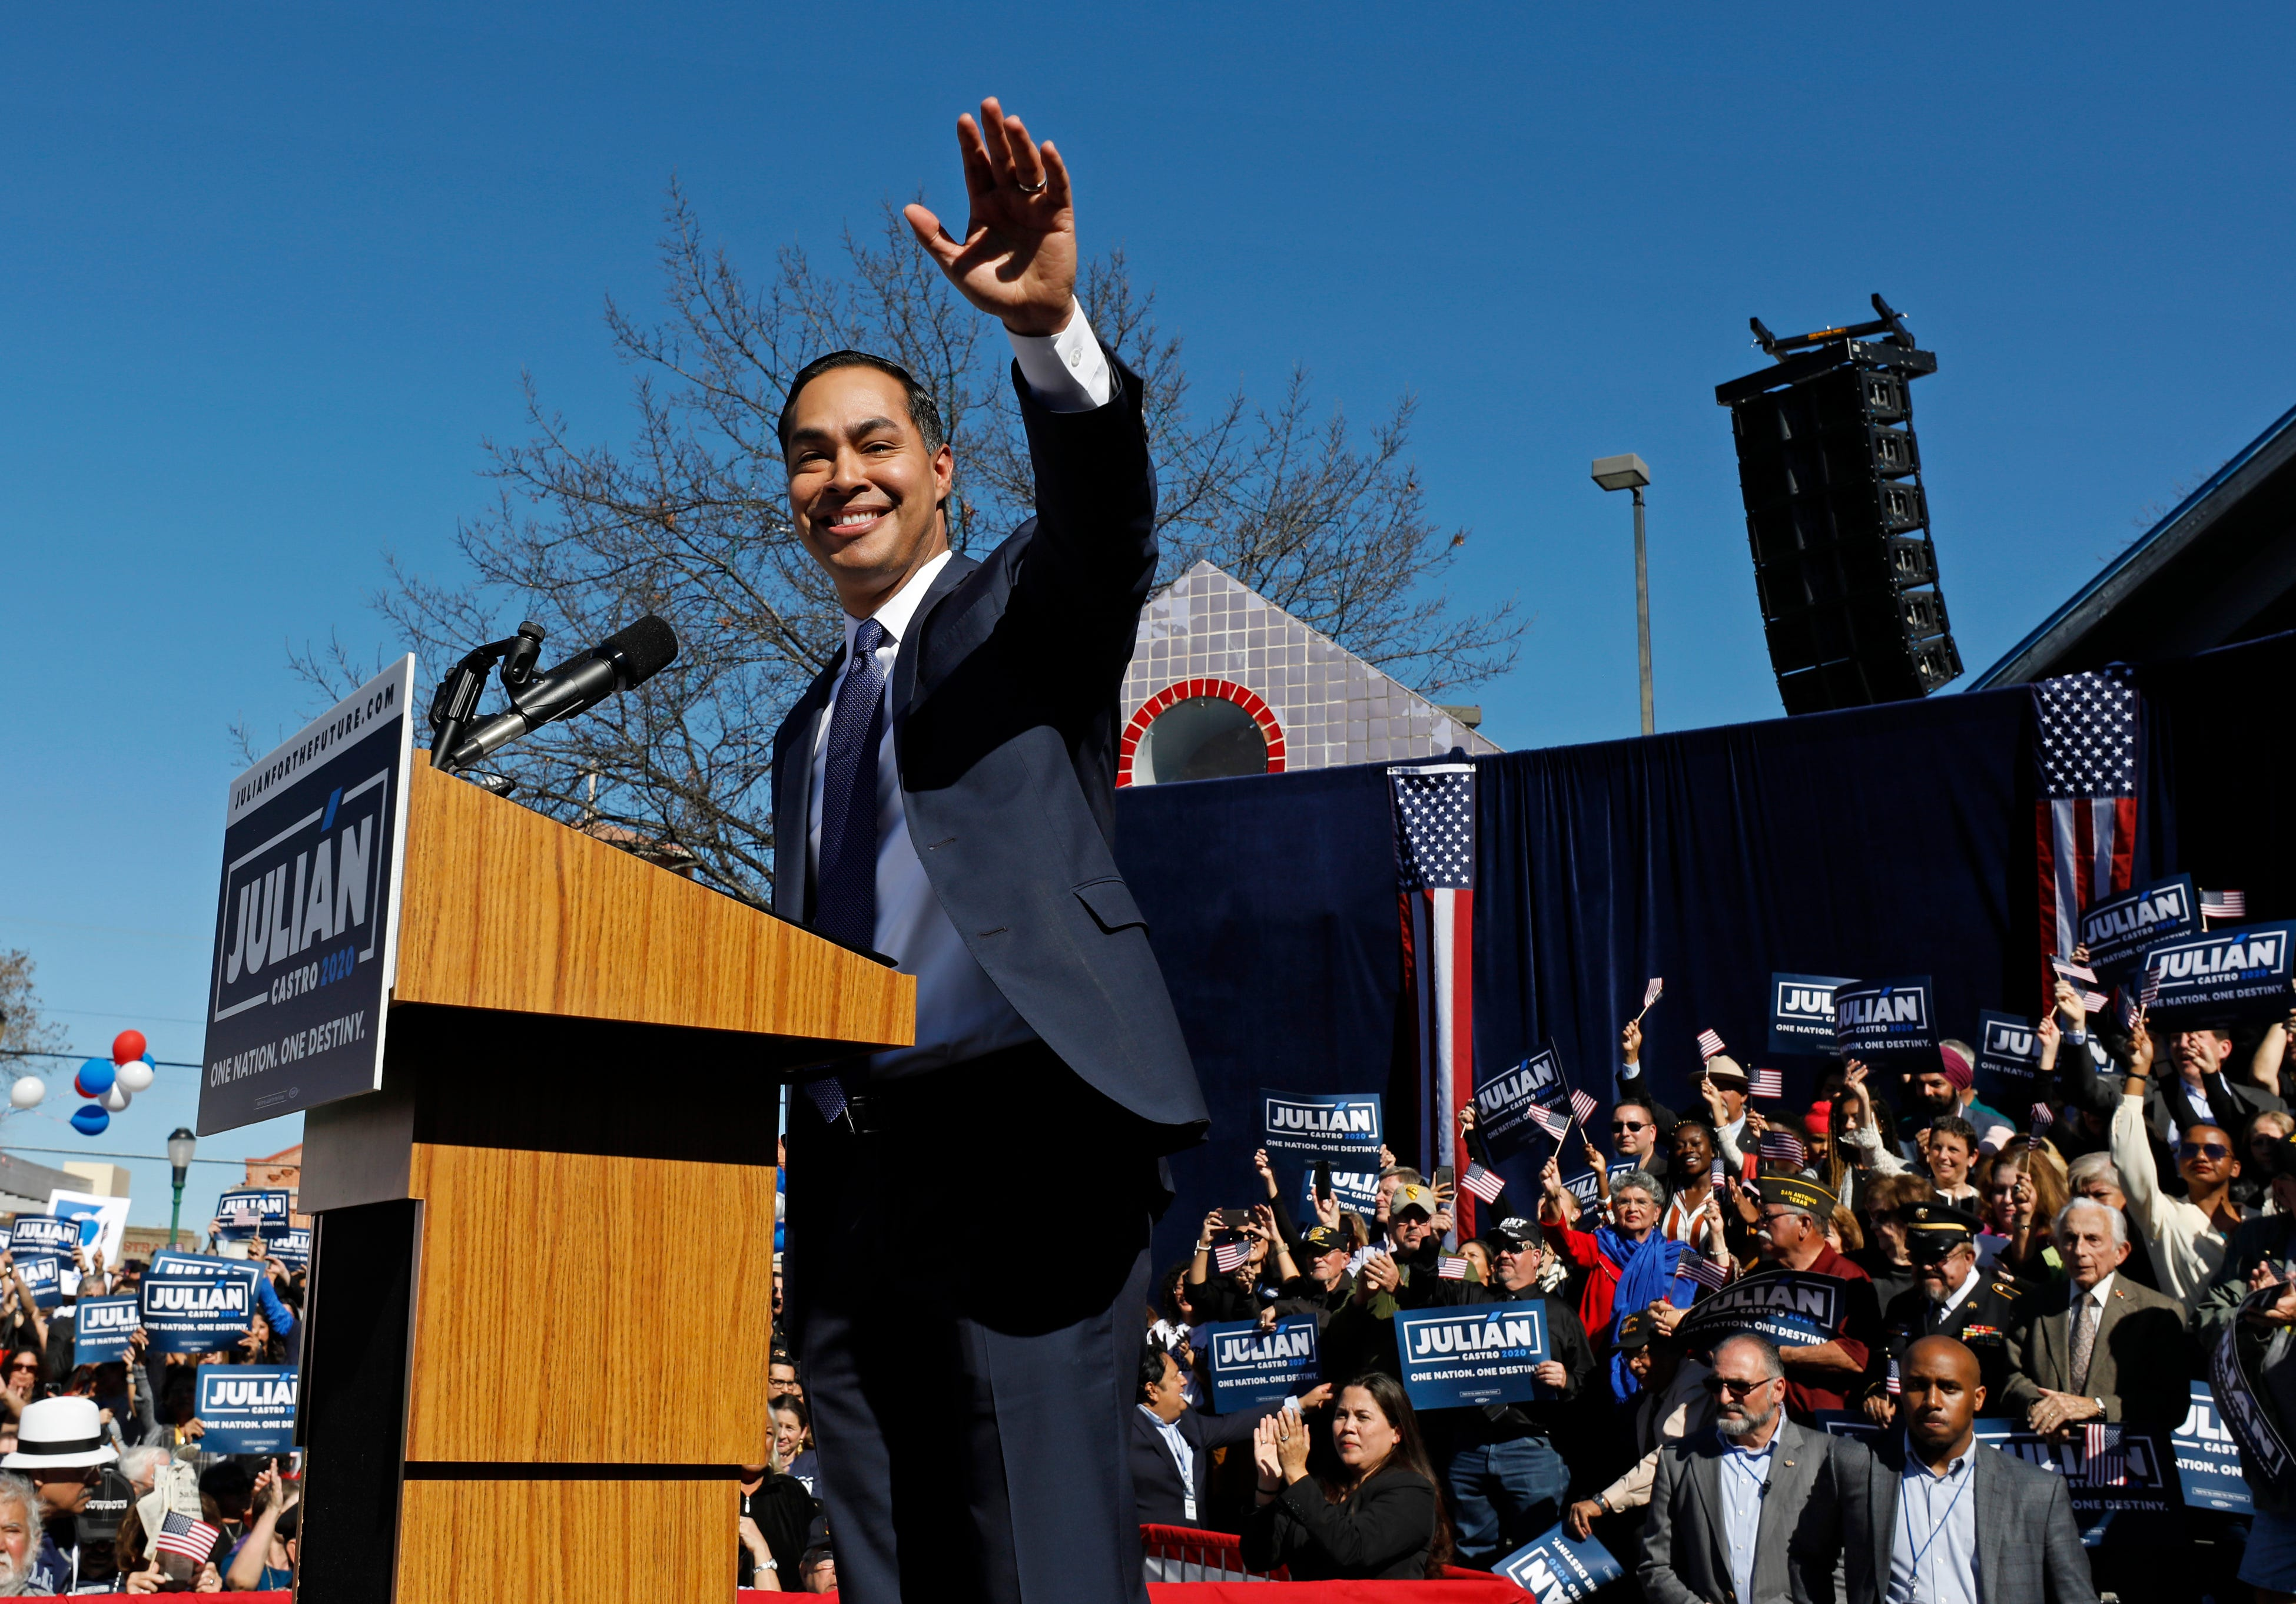 Julian Castro, former U.S. Department of Housing and Urban Development (HUD) Secretary and San Antonio Mayor announced he was running for president on Jan. 12, 2019.